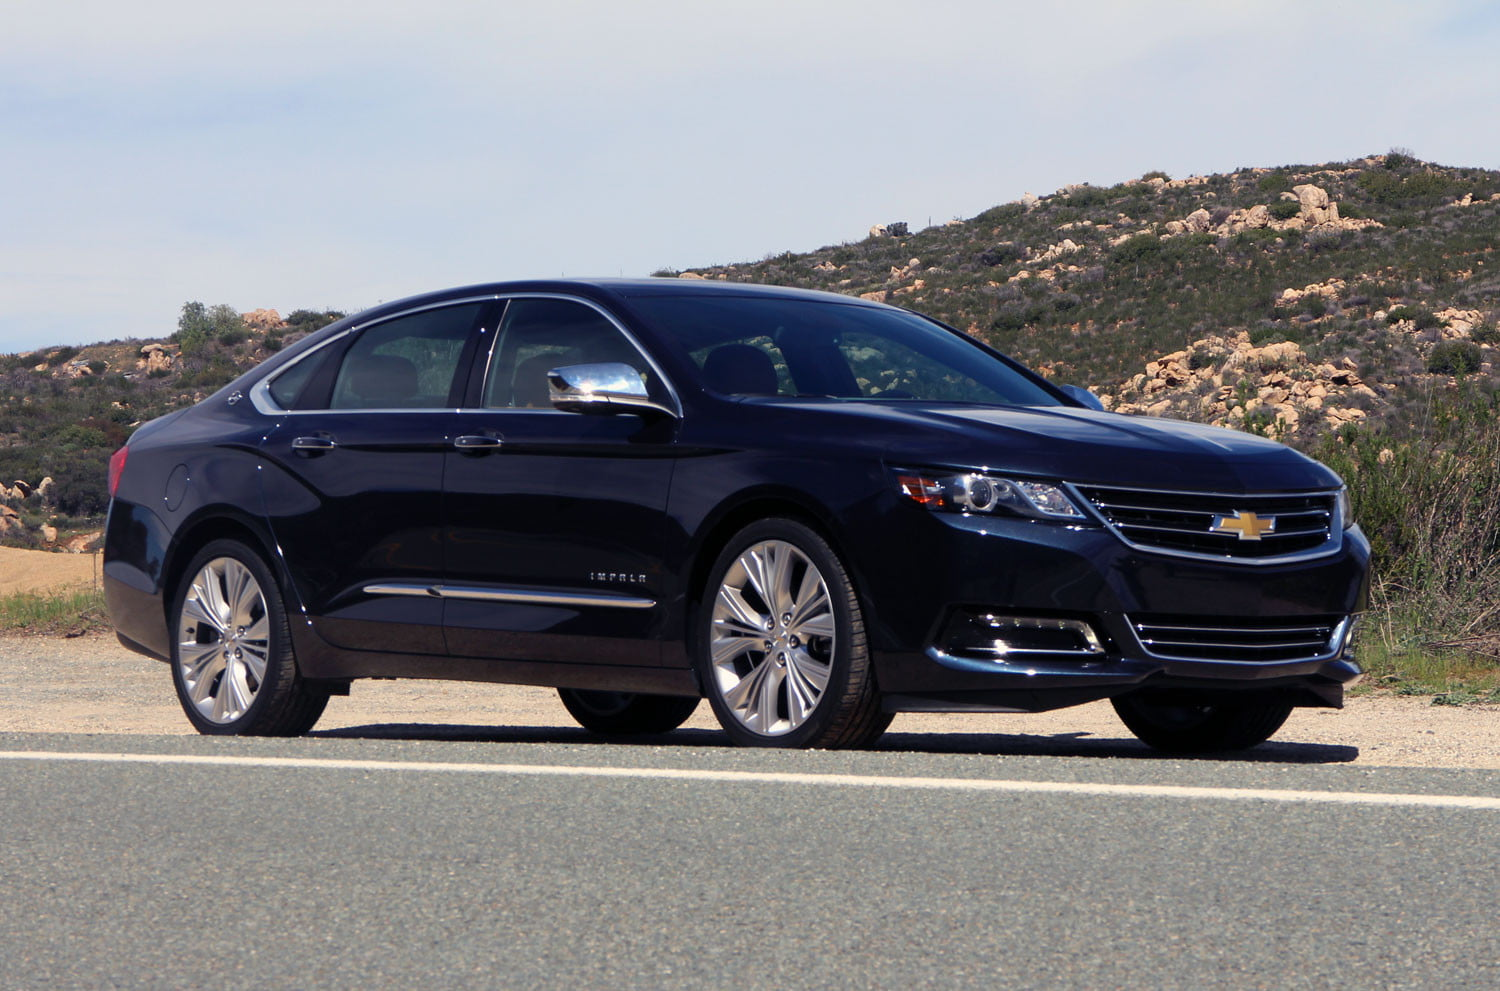 First drive: 2014 Chevrolet Impala | Digital Trends